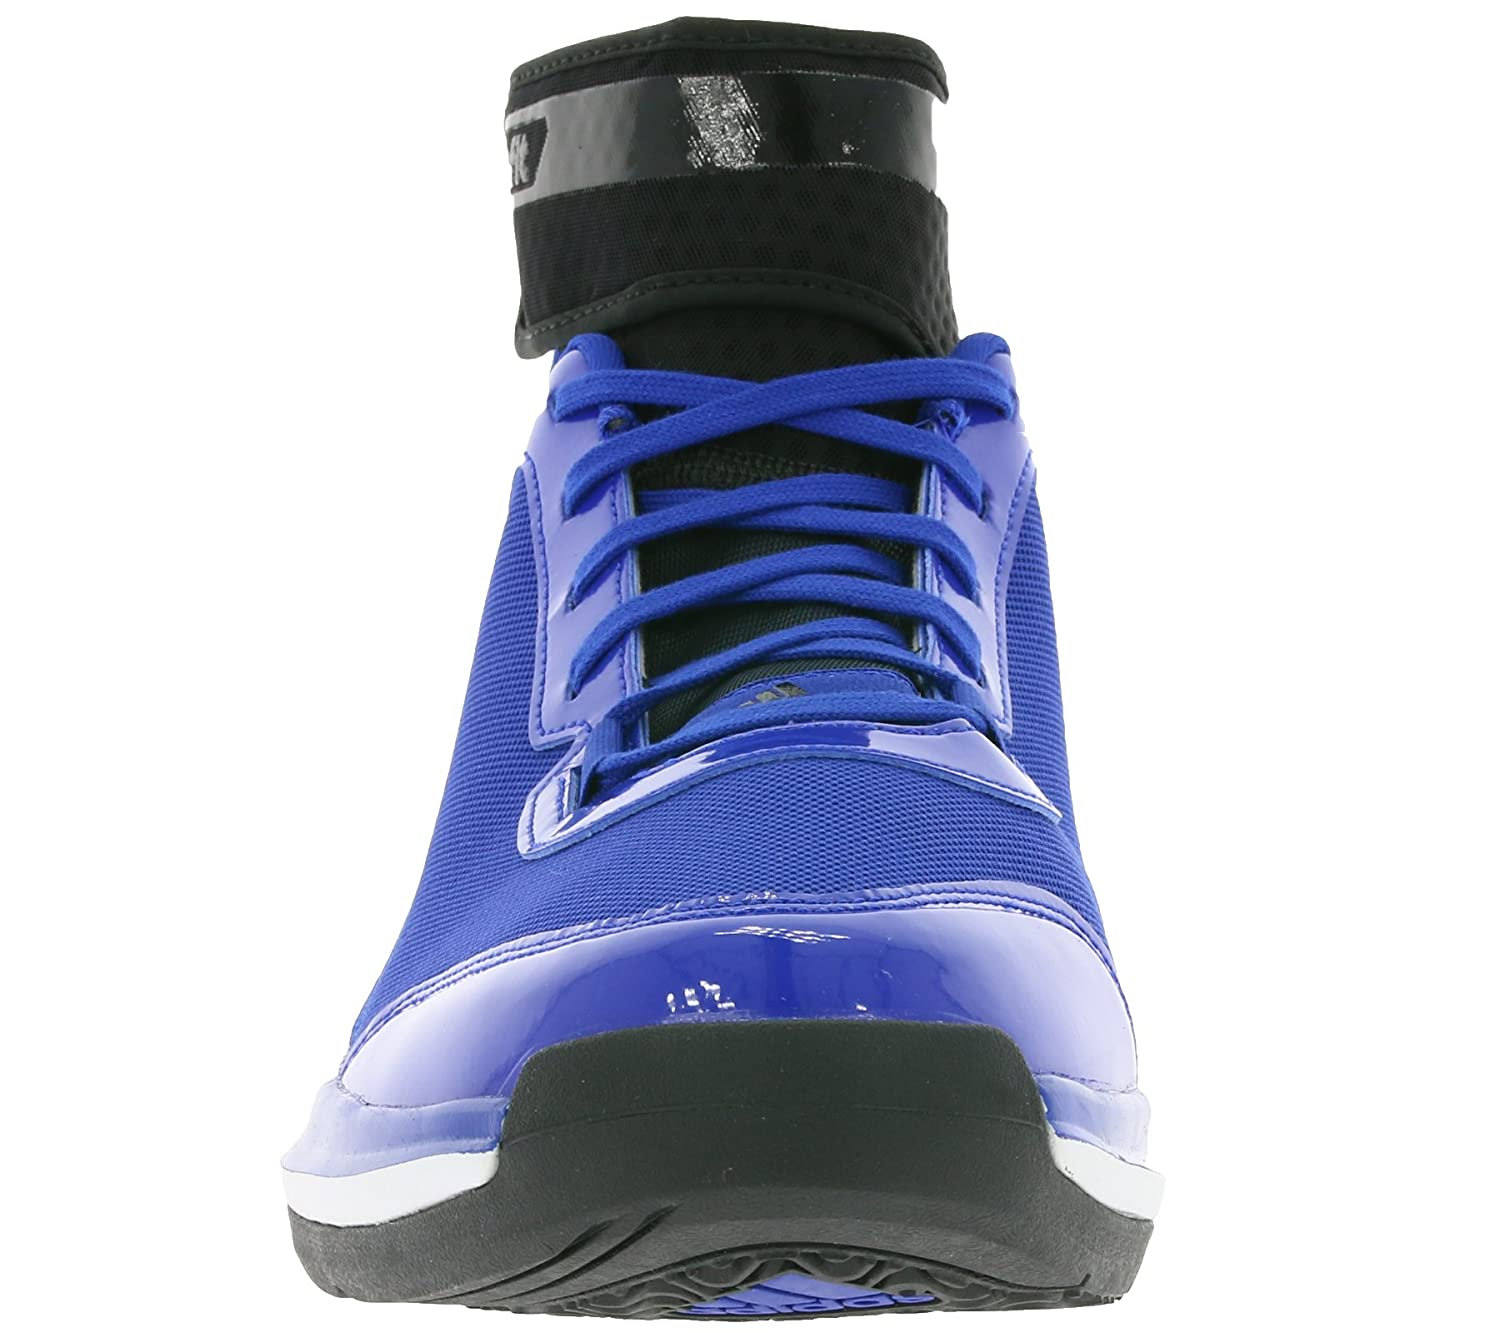 size 40 1342c 6b47b adidas Performance Crazy Ghost 2015 Mens Basketball Shoes Blue D69549,  Size50 Amazon.co.uk Shoes  Bags